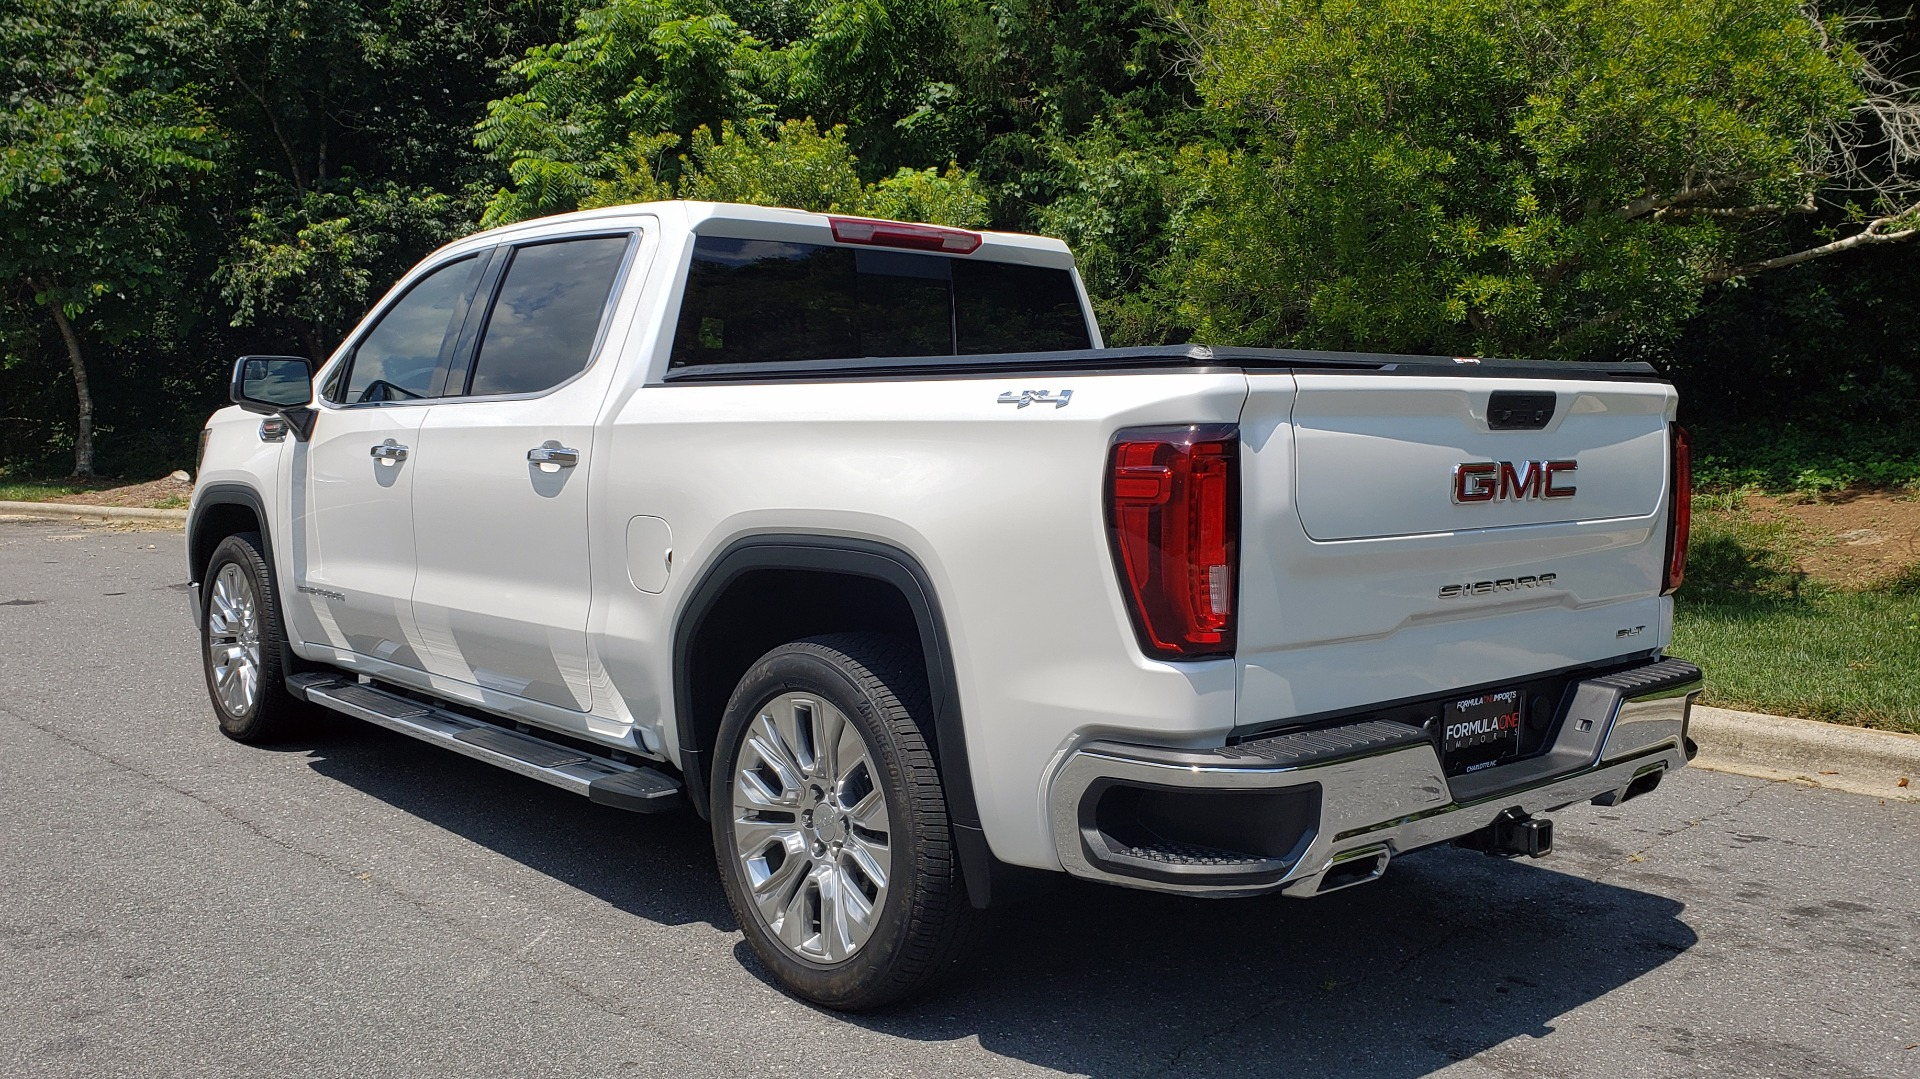 Used 2019 GMC SIERRA 1500 SLT 4WD CREWCAB / PREMIUM / 6.2L V8 / NAV / SUNROOF / VENT SEATS for sale Sold at Formula Imports in Charlotte NC 28227 3